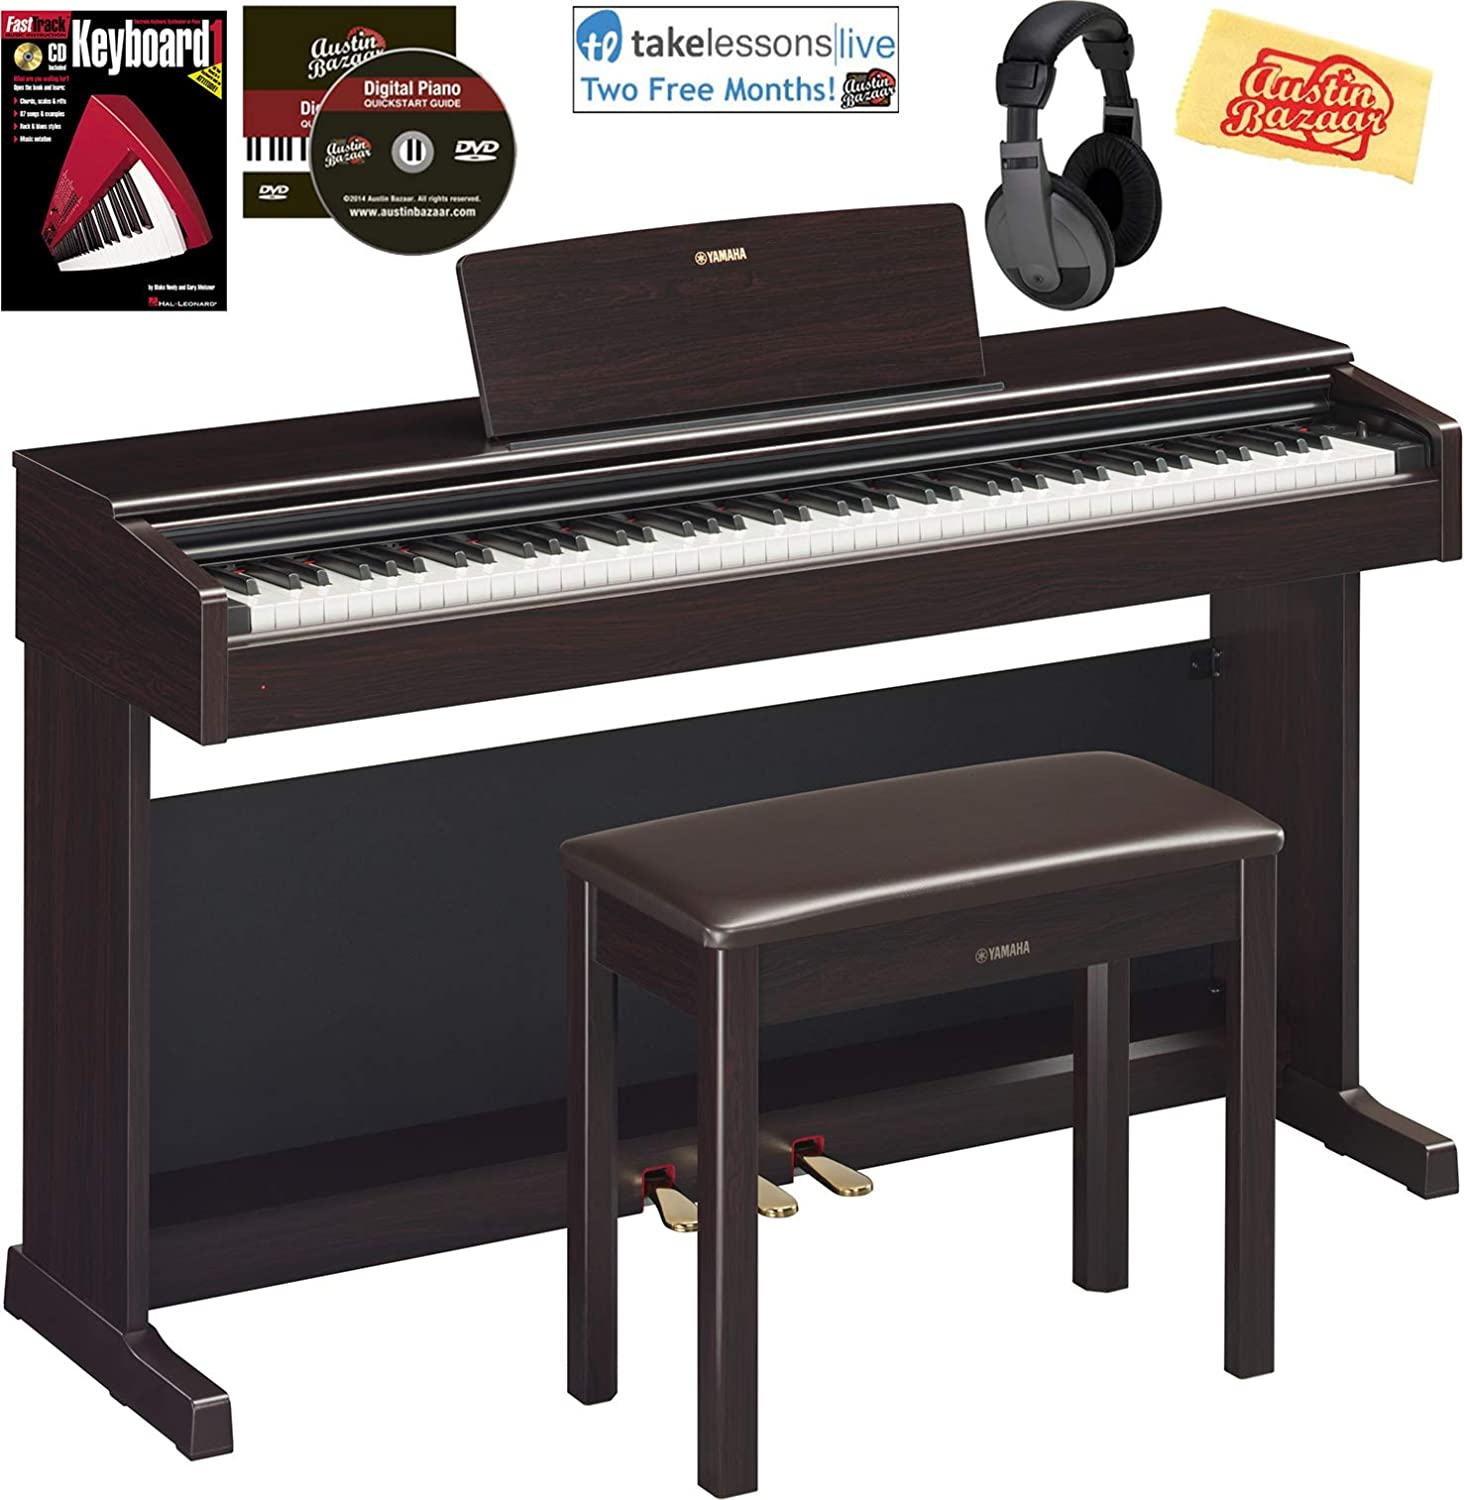 Top 8 Best Upright Pianos Reviews in 2020 4